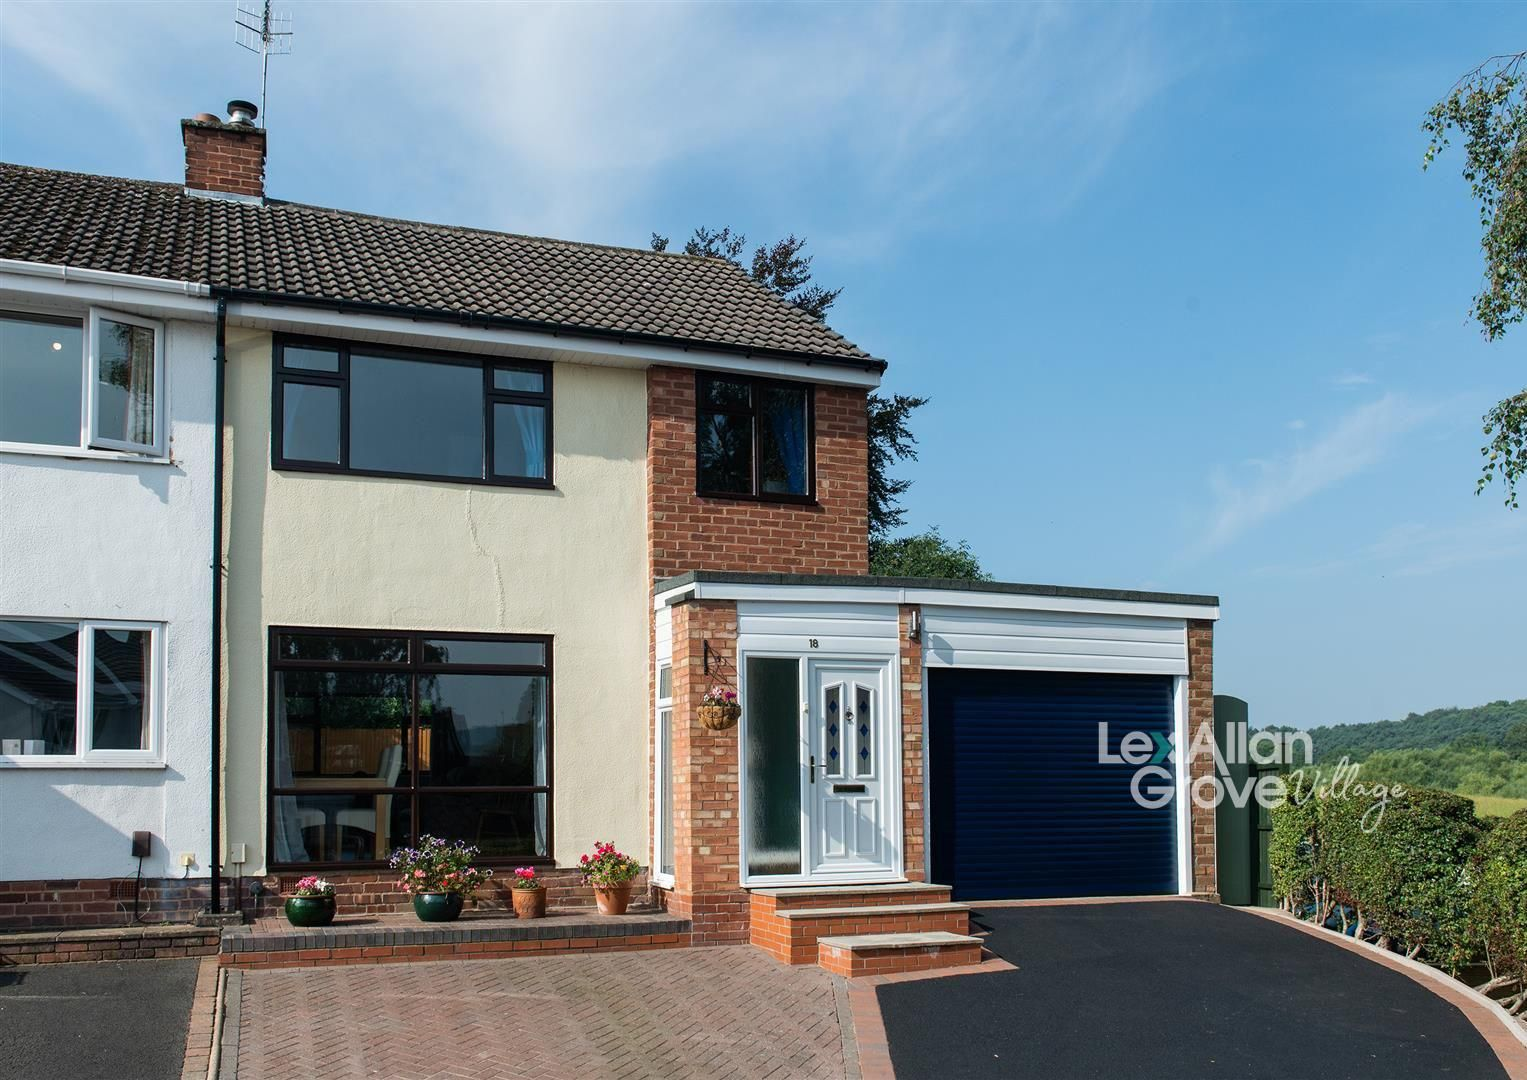 3 bed semi-detached for sale in Hagley, DY9